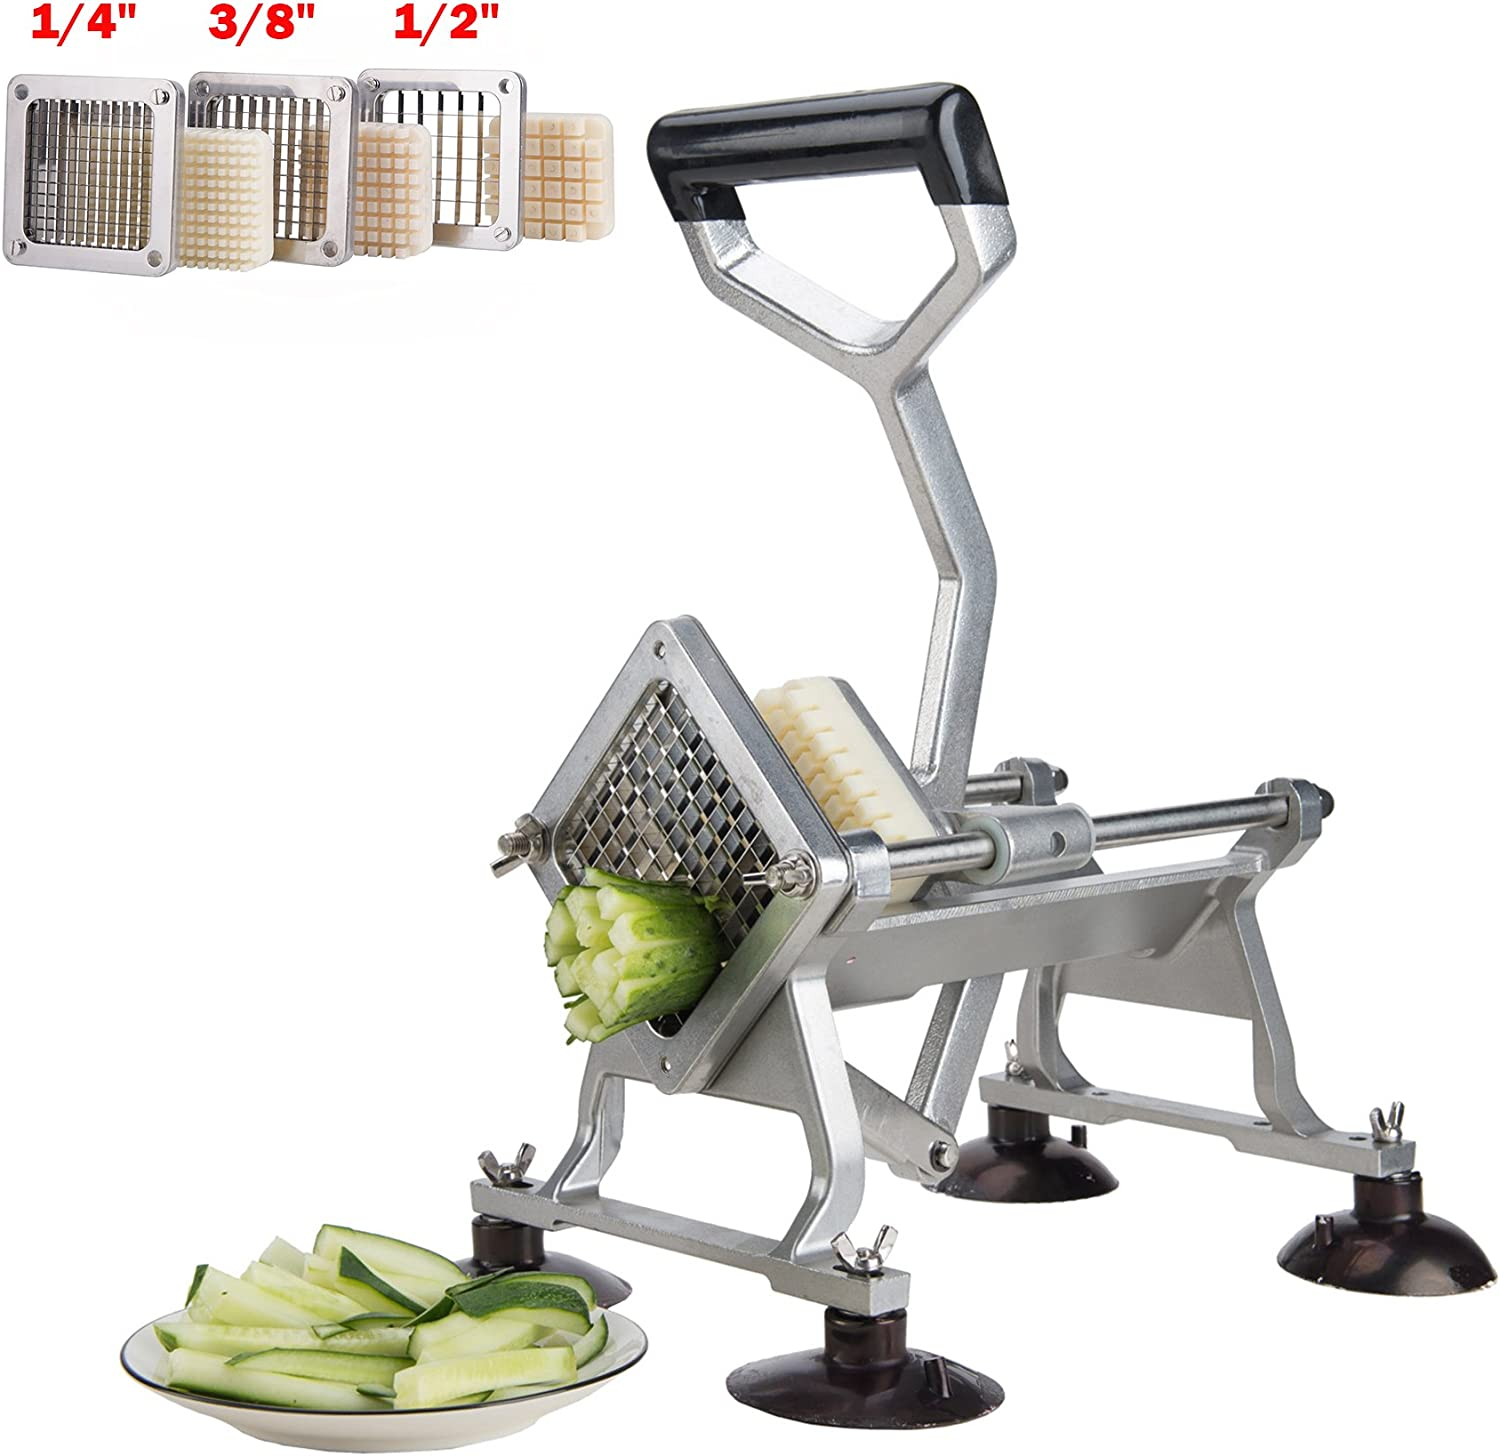 CO-Z Commercial Grade Aluminum Alloy Heavy Duty French Fry Cutter & Slicer